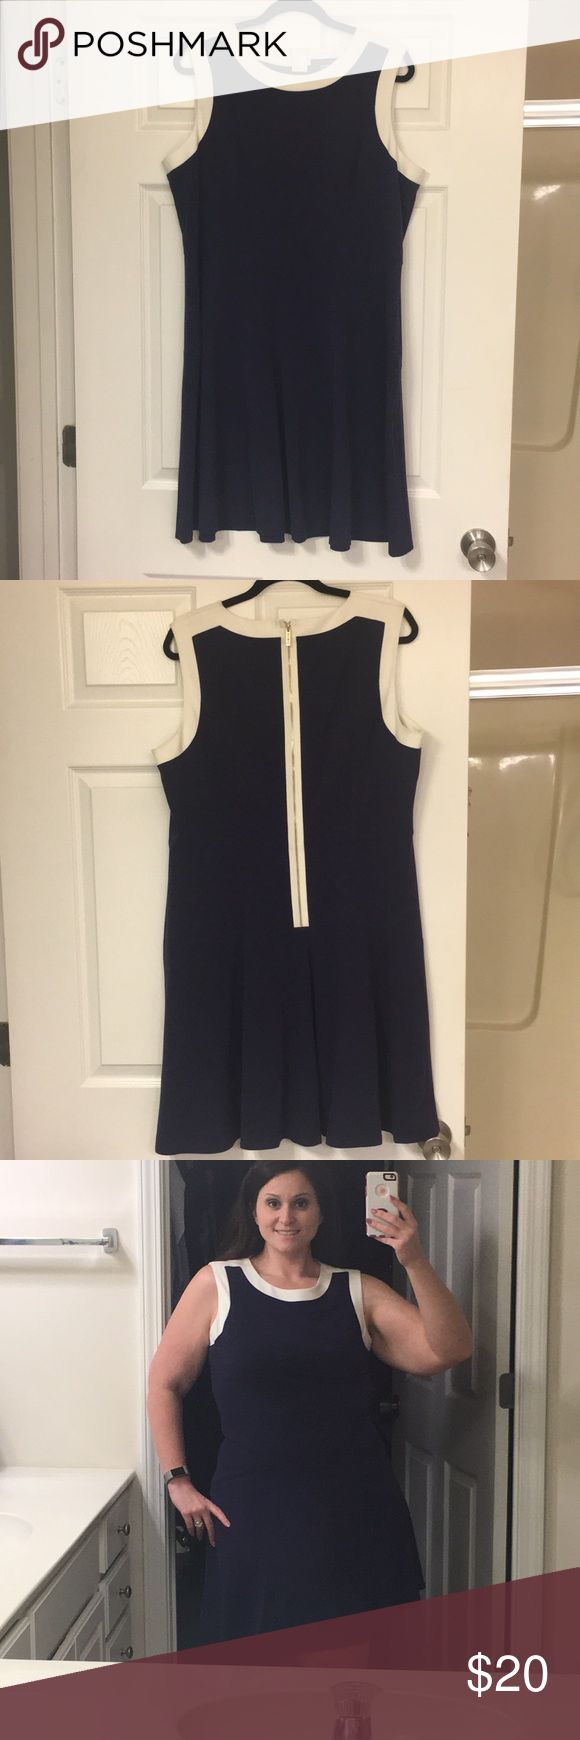 Never worn, not my style anymore. Timmy Hilfiger Navy blue sheath dress with white trim and gold zipper. Top is lined on the inside down to waste. Falls right above the knee. Tommy Hilfiger Dresses